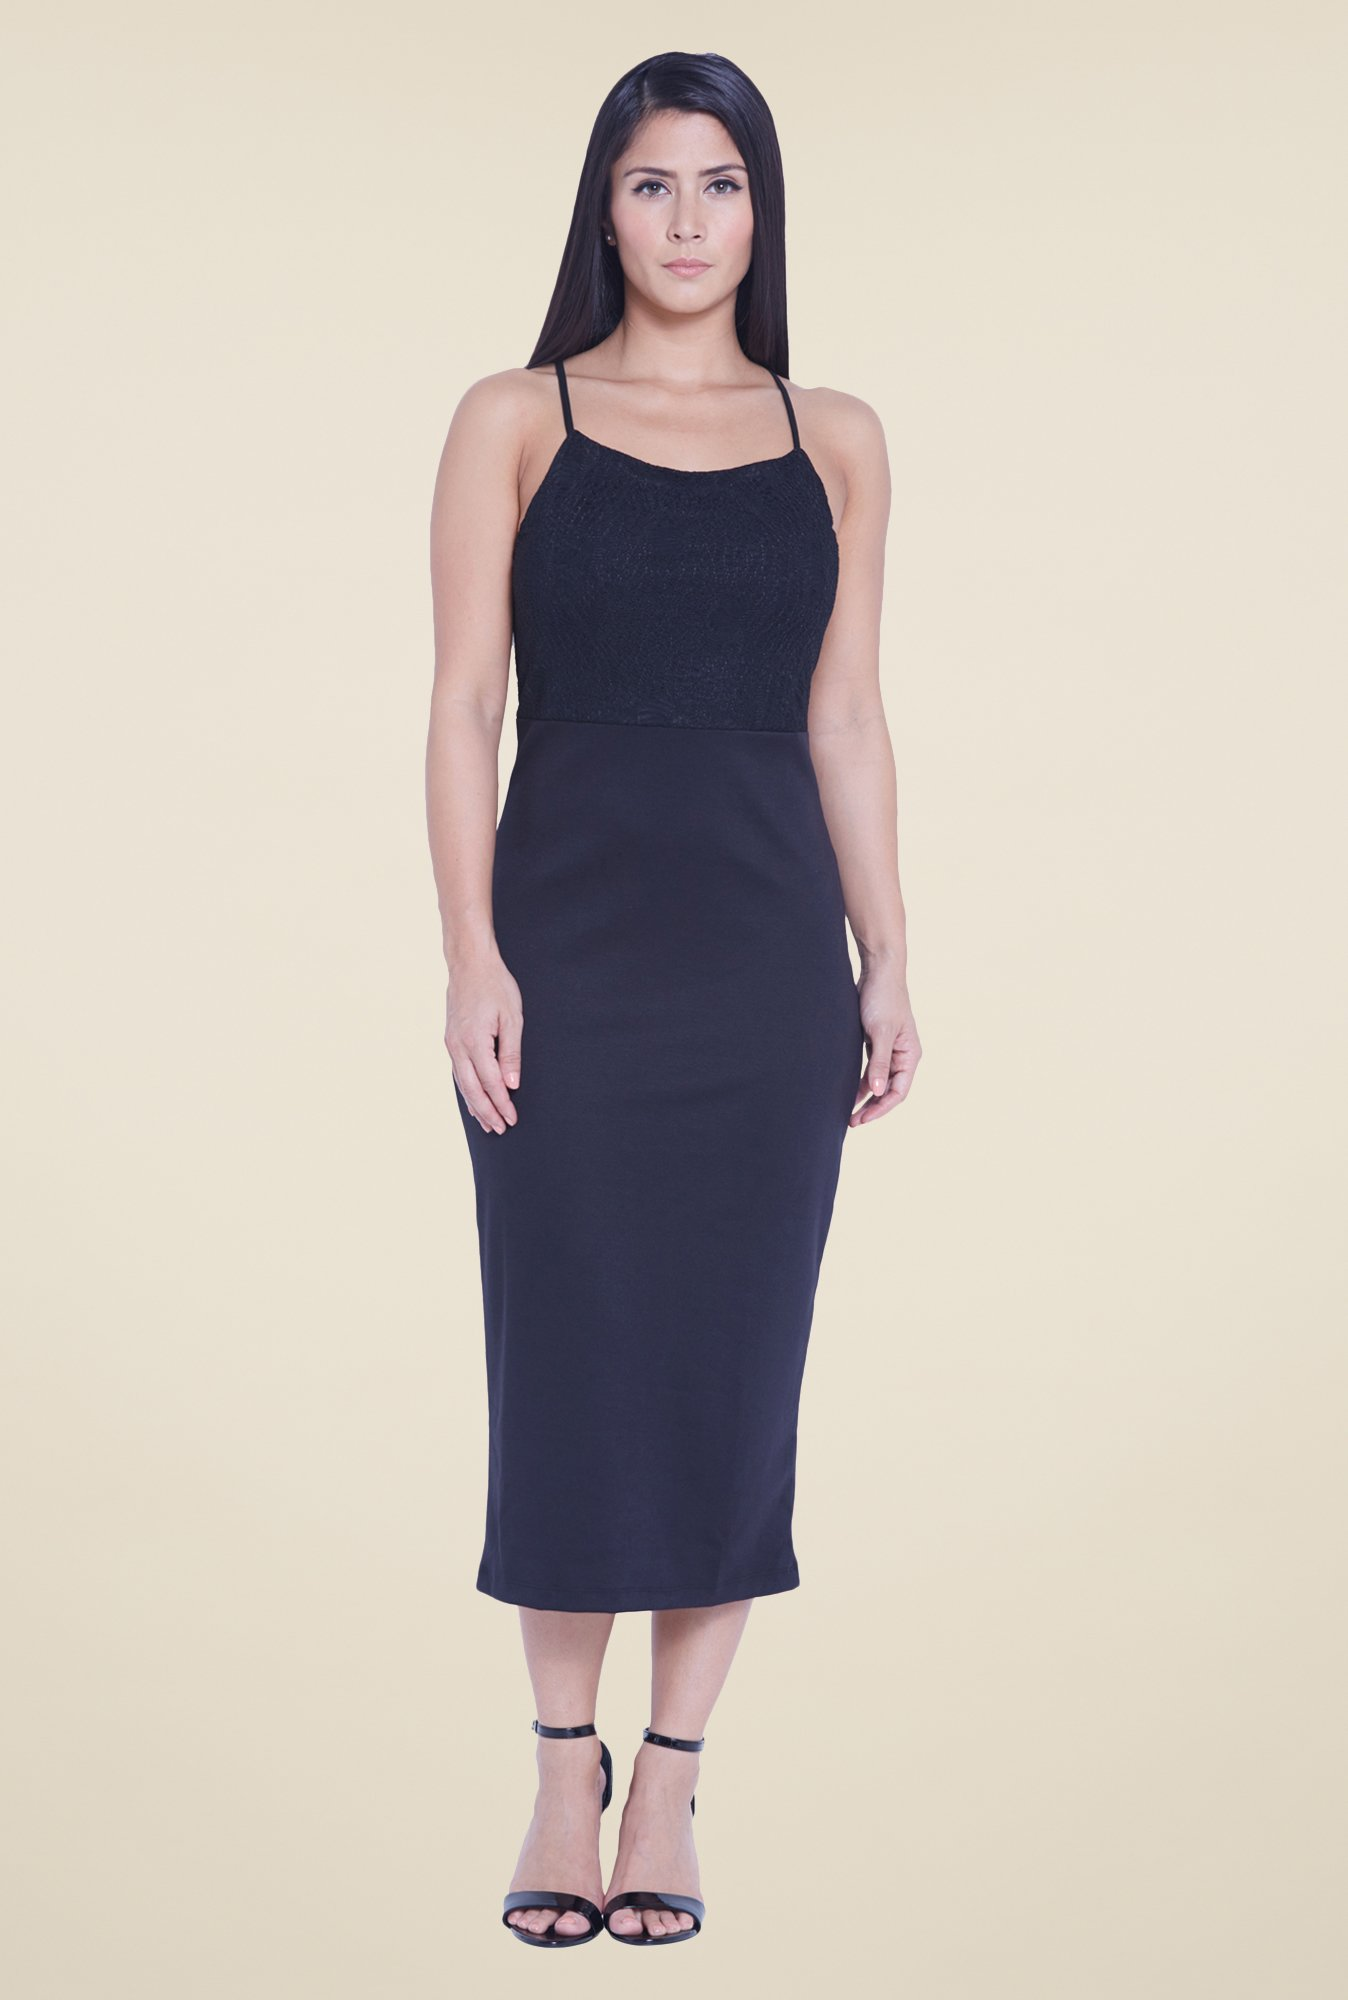 Globus Black Midi Dress